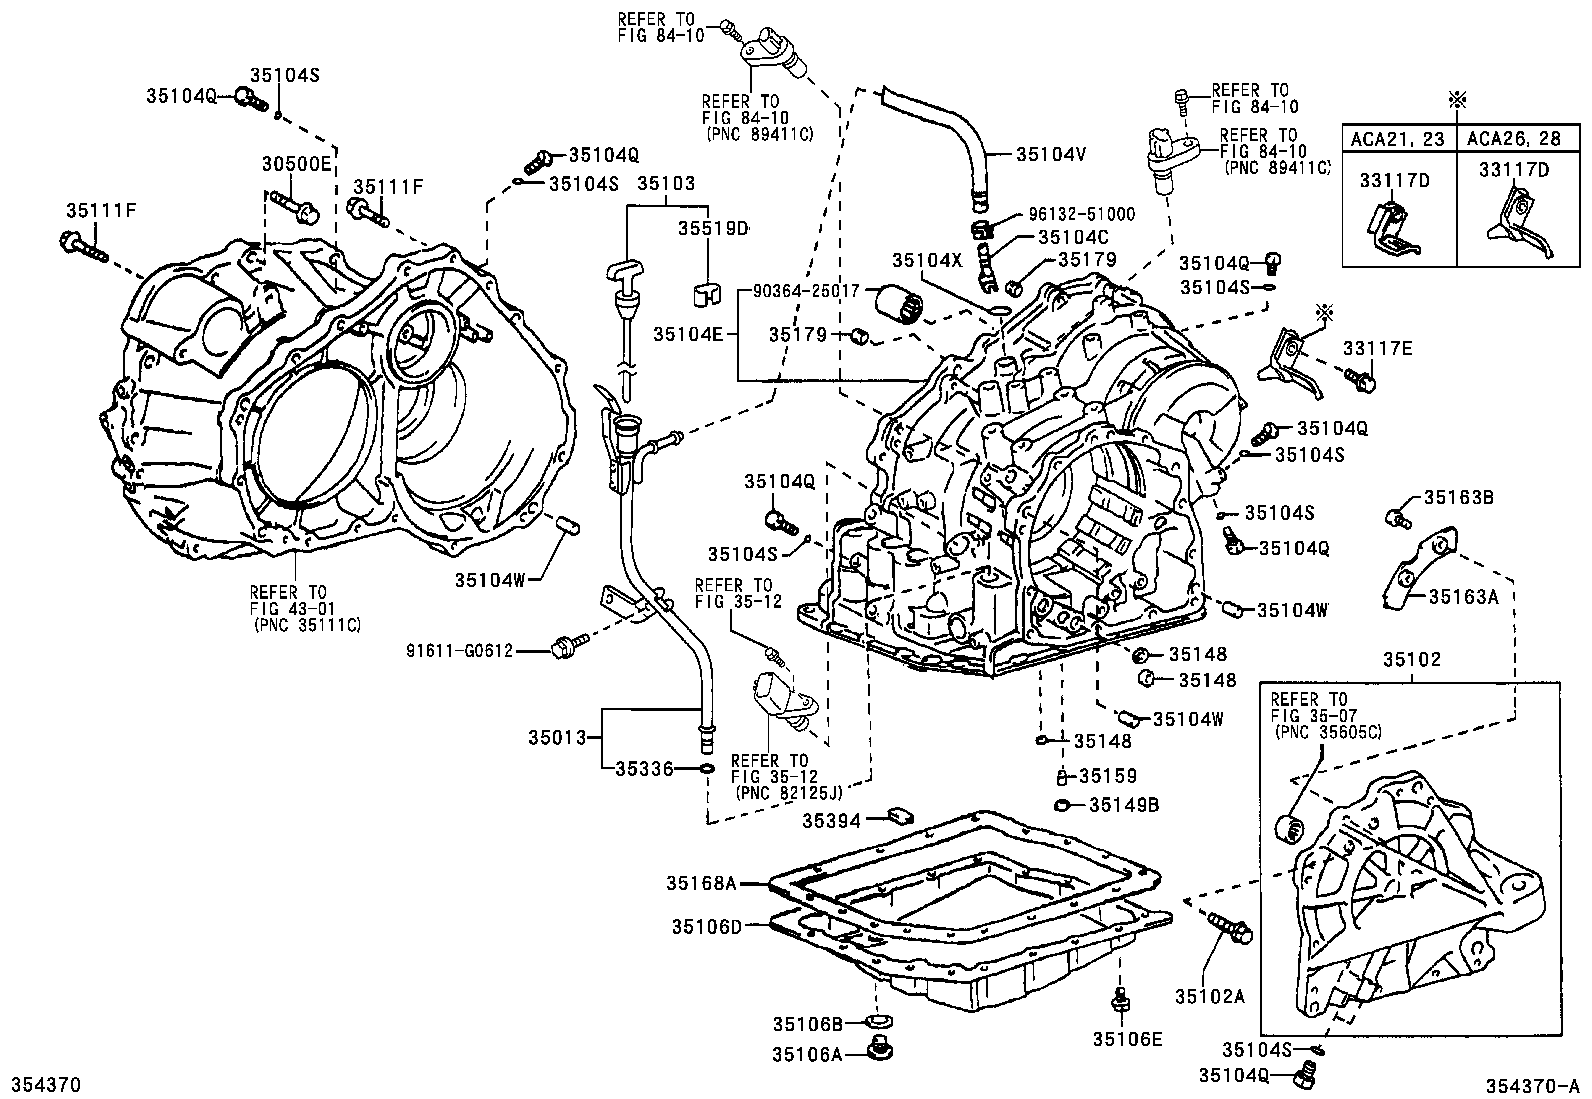 hight resolution of 2001 toyota rav4 engine diagram completed wiring diagrams rh 22 schwarzgoldtrio de 2001 toyota rav4 serpentine belt diagram toyota rav4 body parts diagram